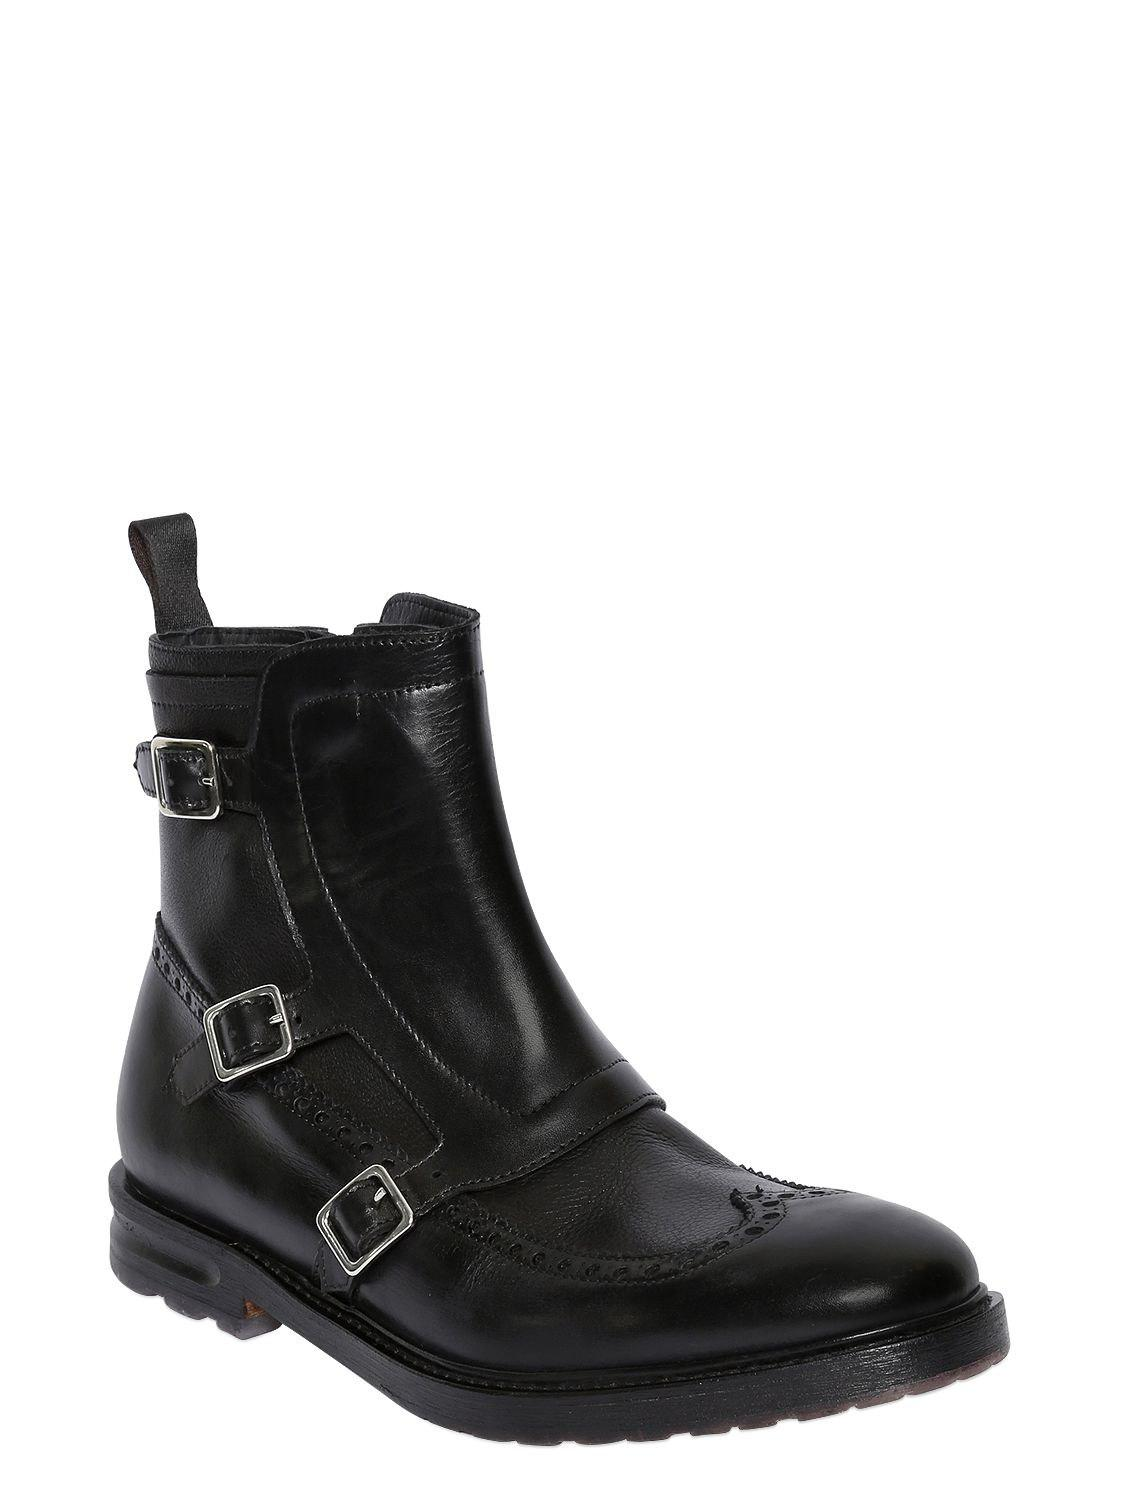 Alexander McQueen WING TIP LEATHER BOOTS WITH GAITER chSvihbe